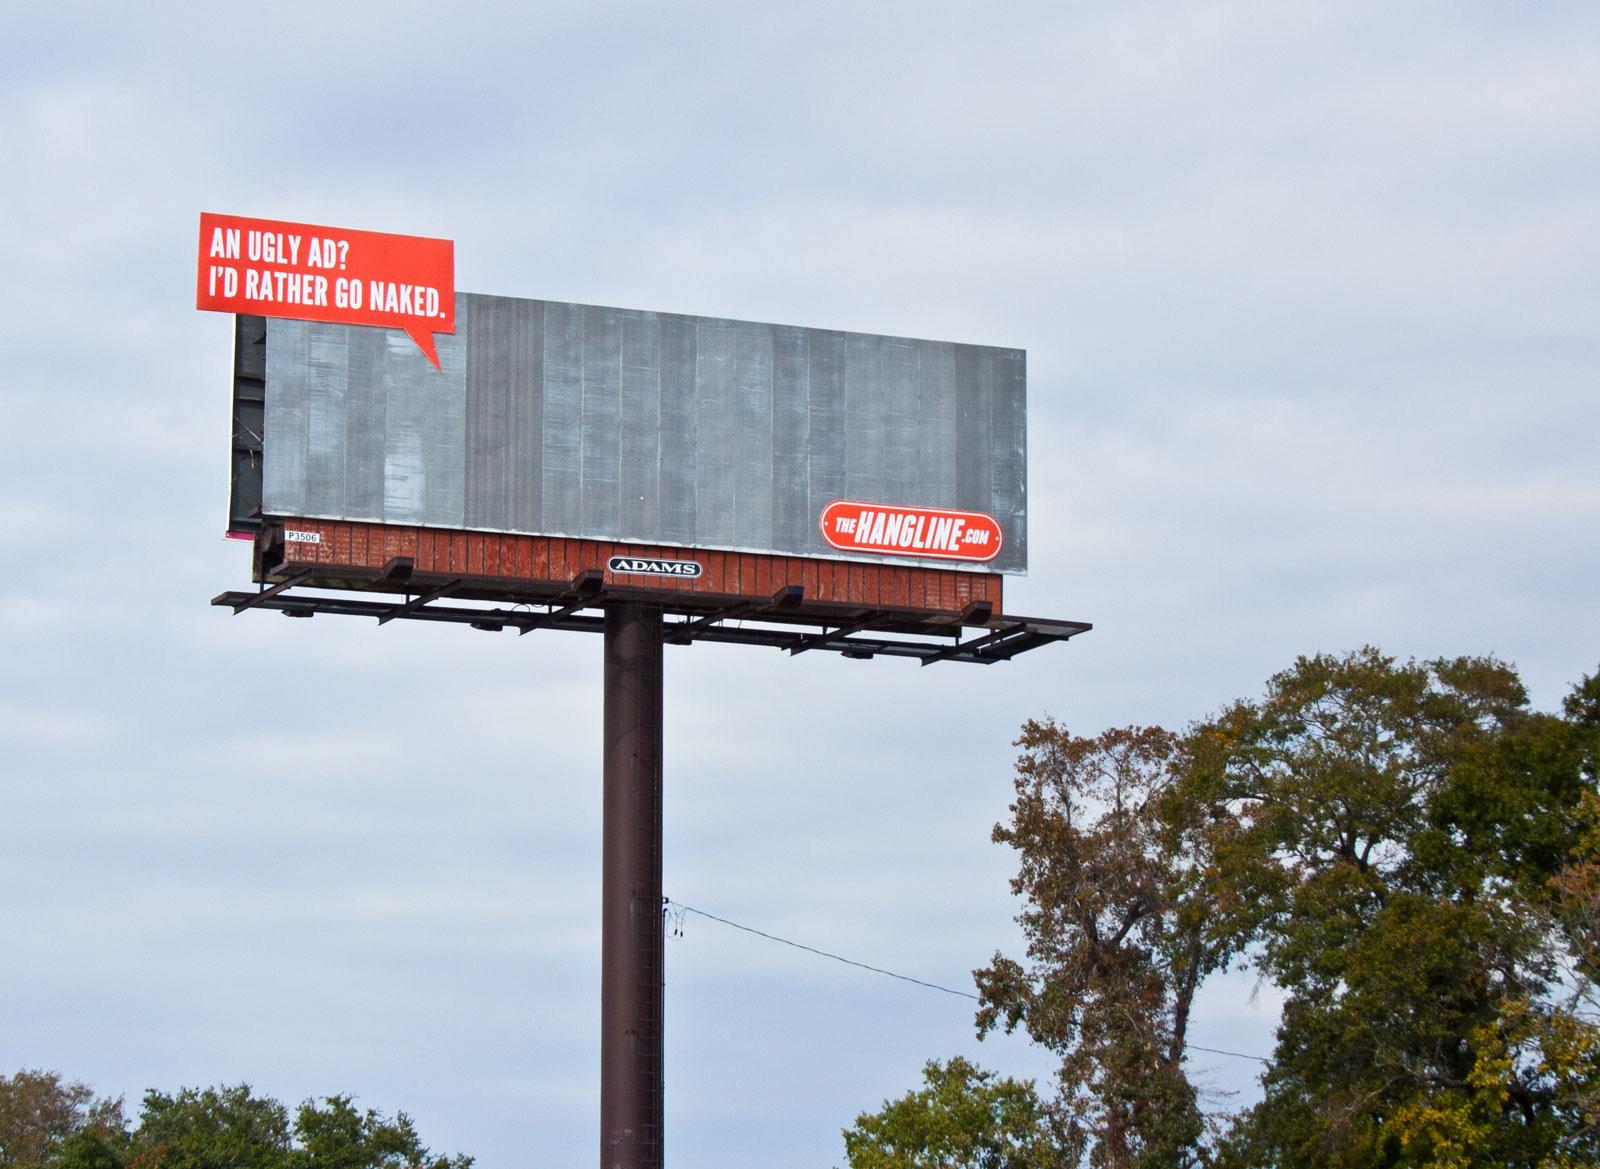 The Hangline Outdoor Ad -  I'd Rather Go Naked